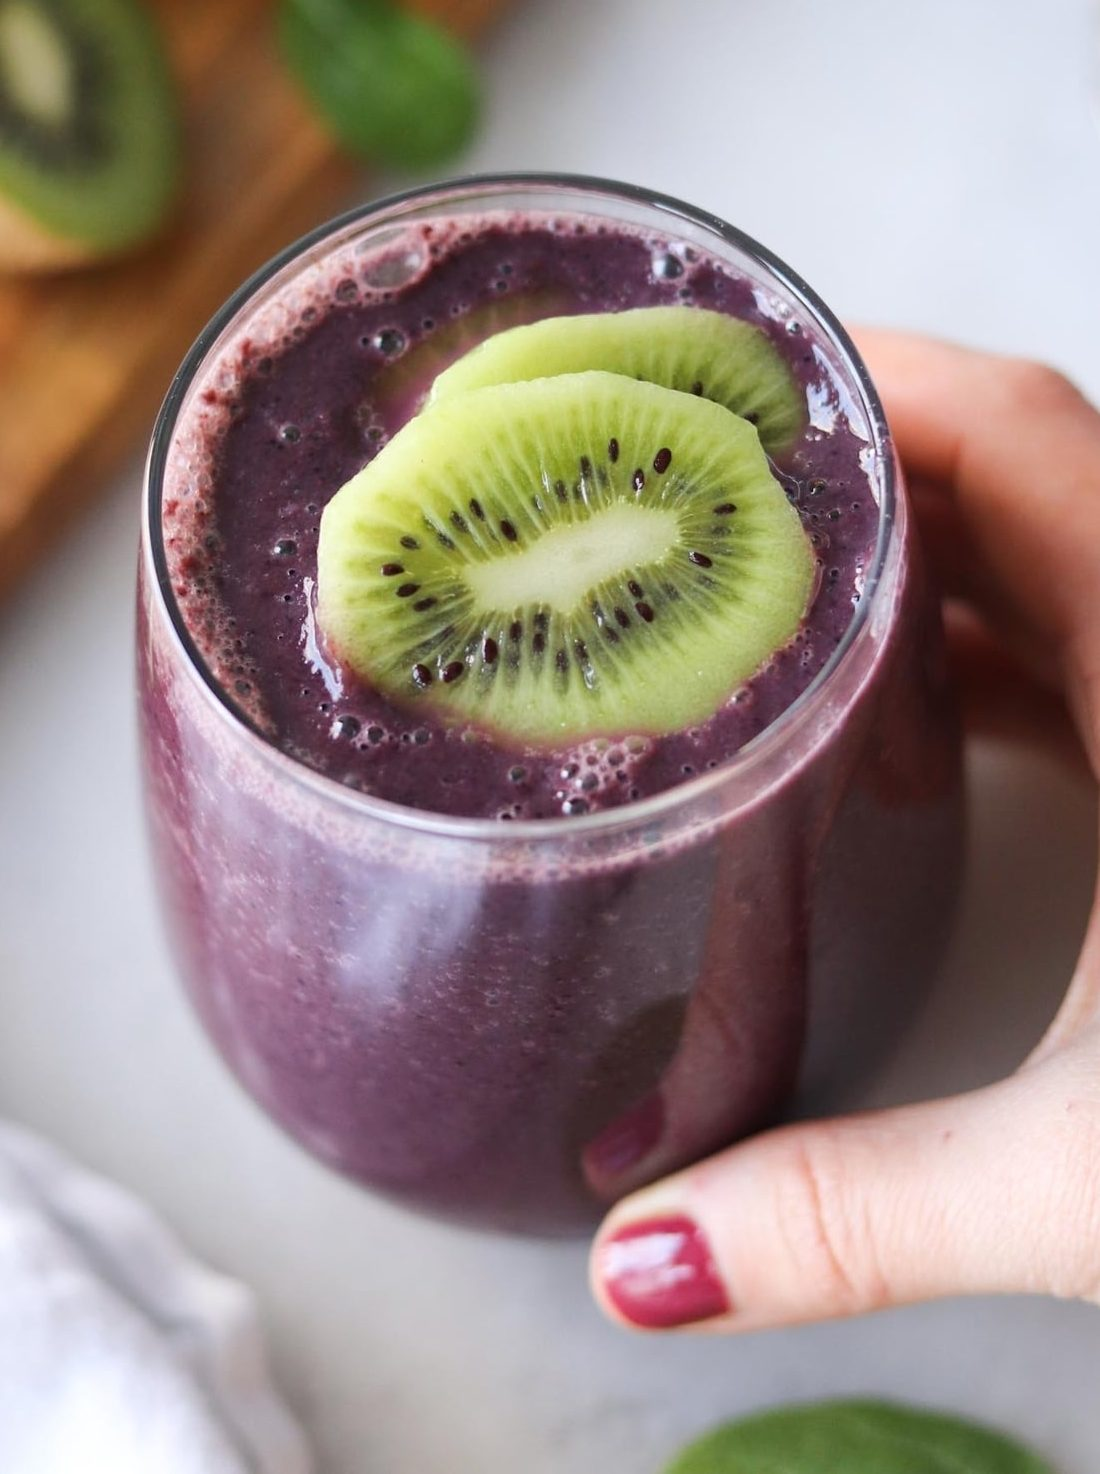 A hand holding a large glass filled with purple kiwi, blueberry and spinach smoothie, garnished with sliced kiwis.